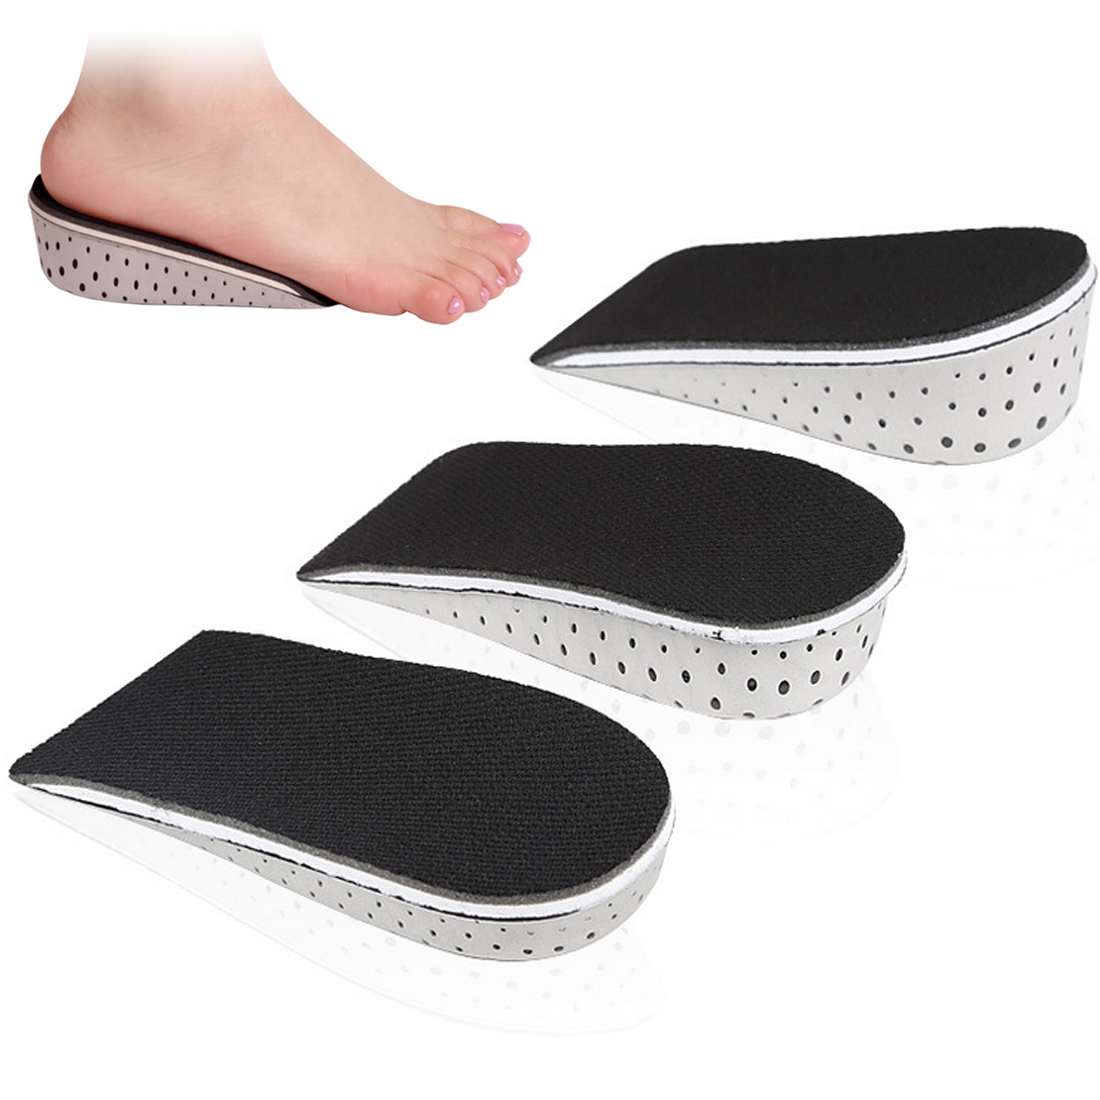 1 Pair 2-4cm Comfortable Orthotic Shoes Insoles Inserts High Arch Support Pad for women men Lift Insert Pad Height Cushion image